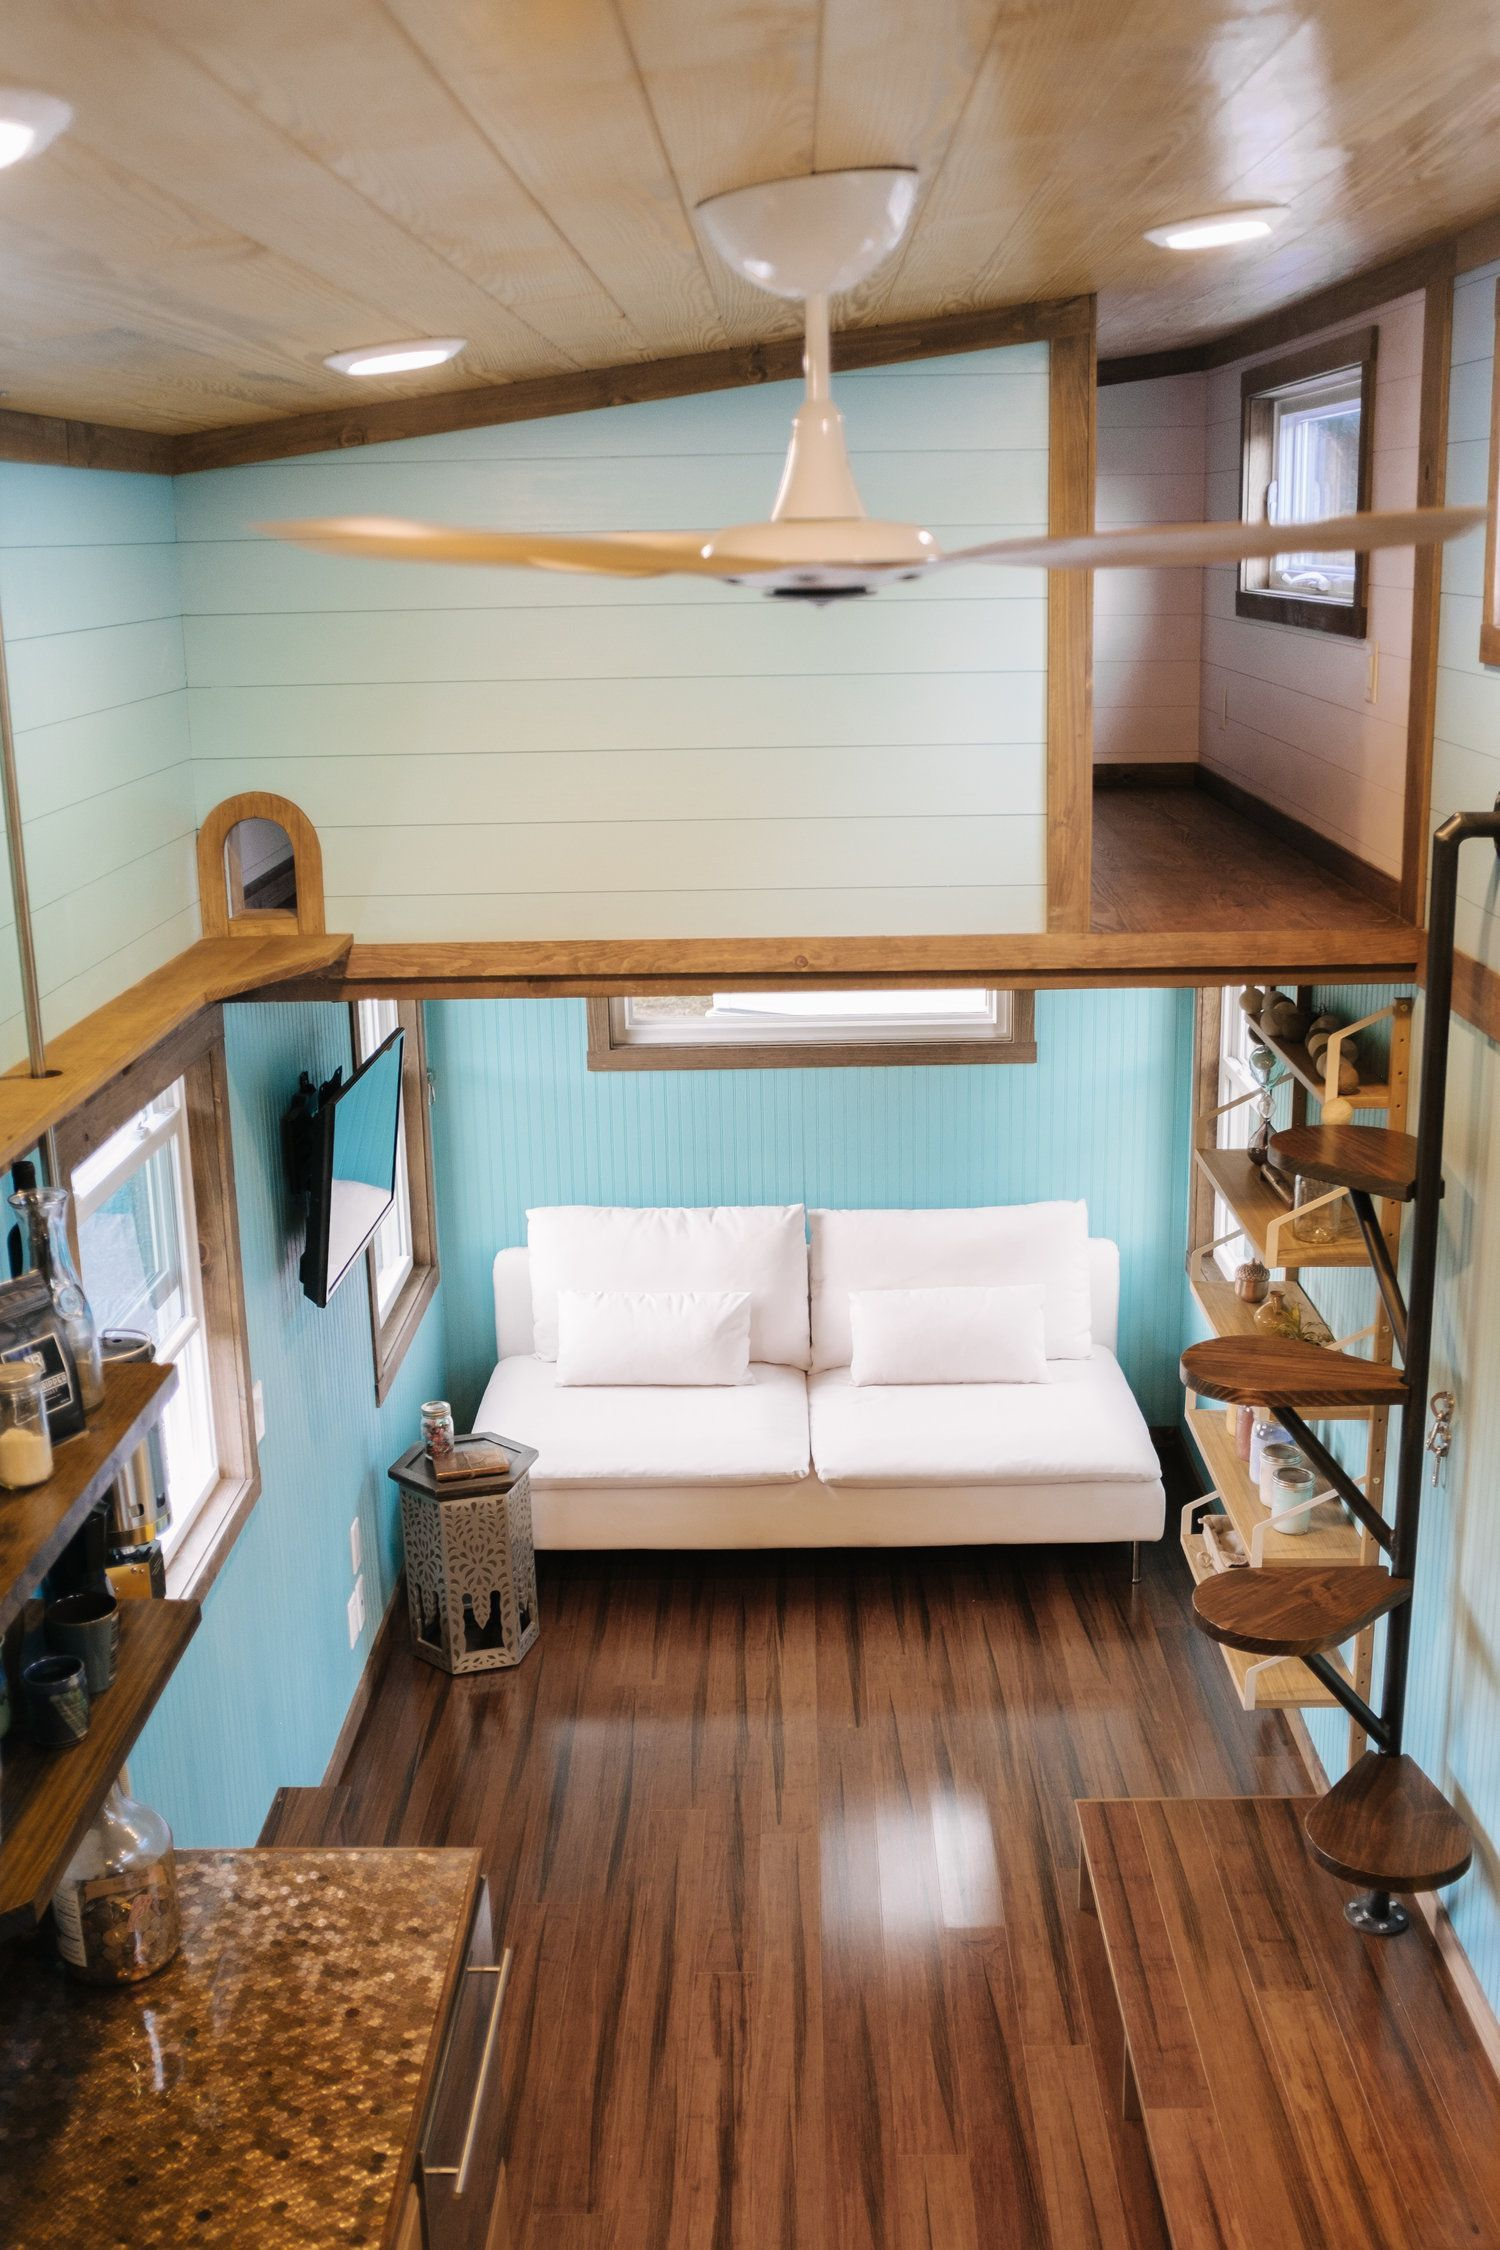 Tiny House Plans Do It Yourself: Small Homes. See The Plans And Details On How You Can